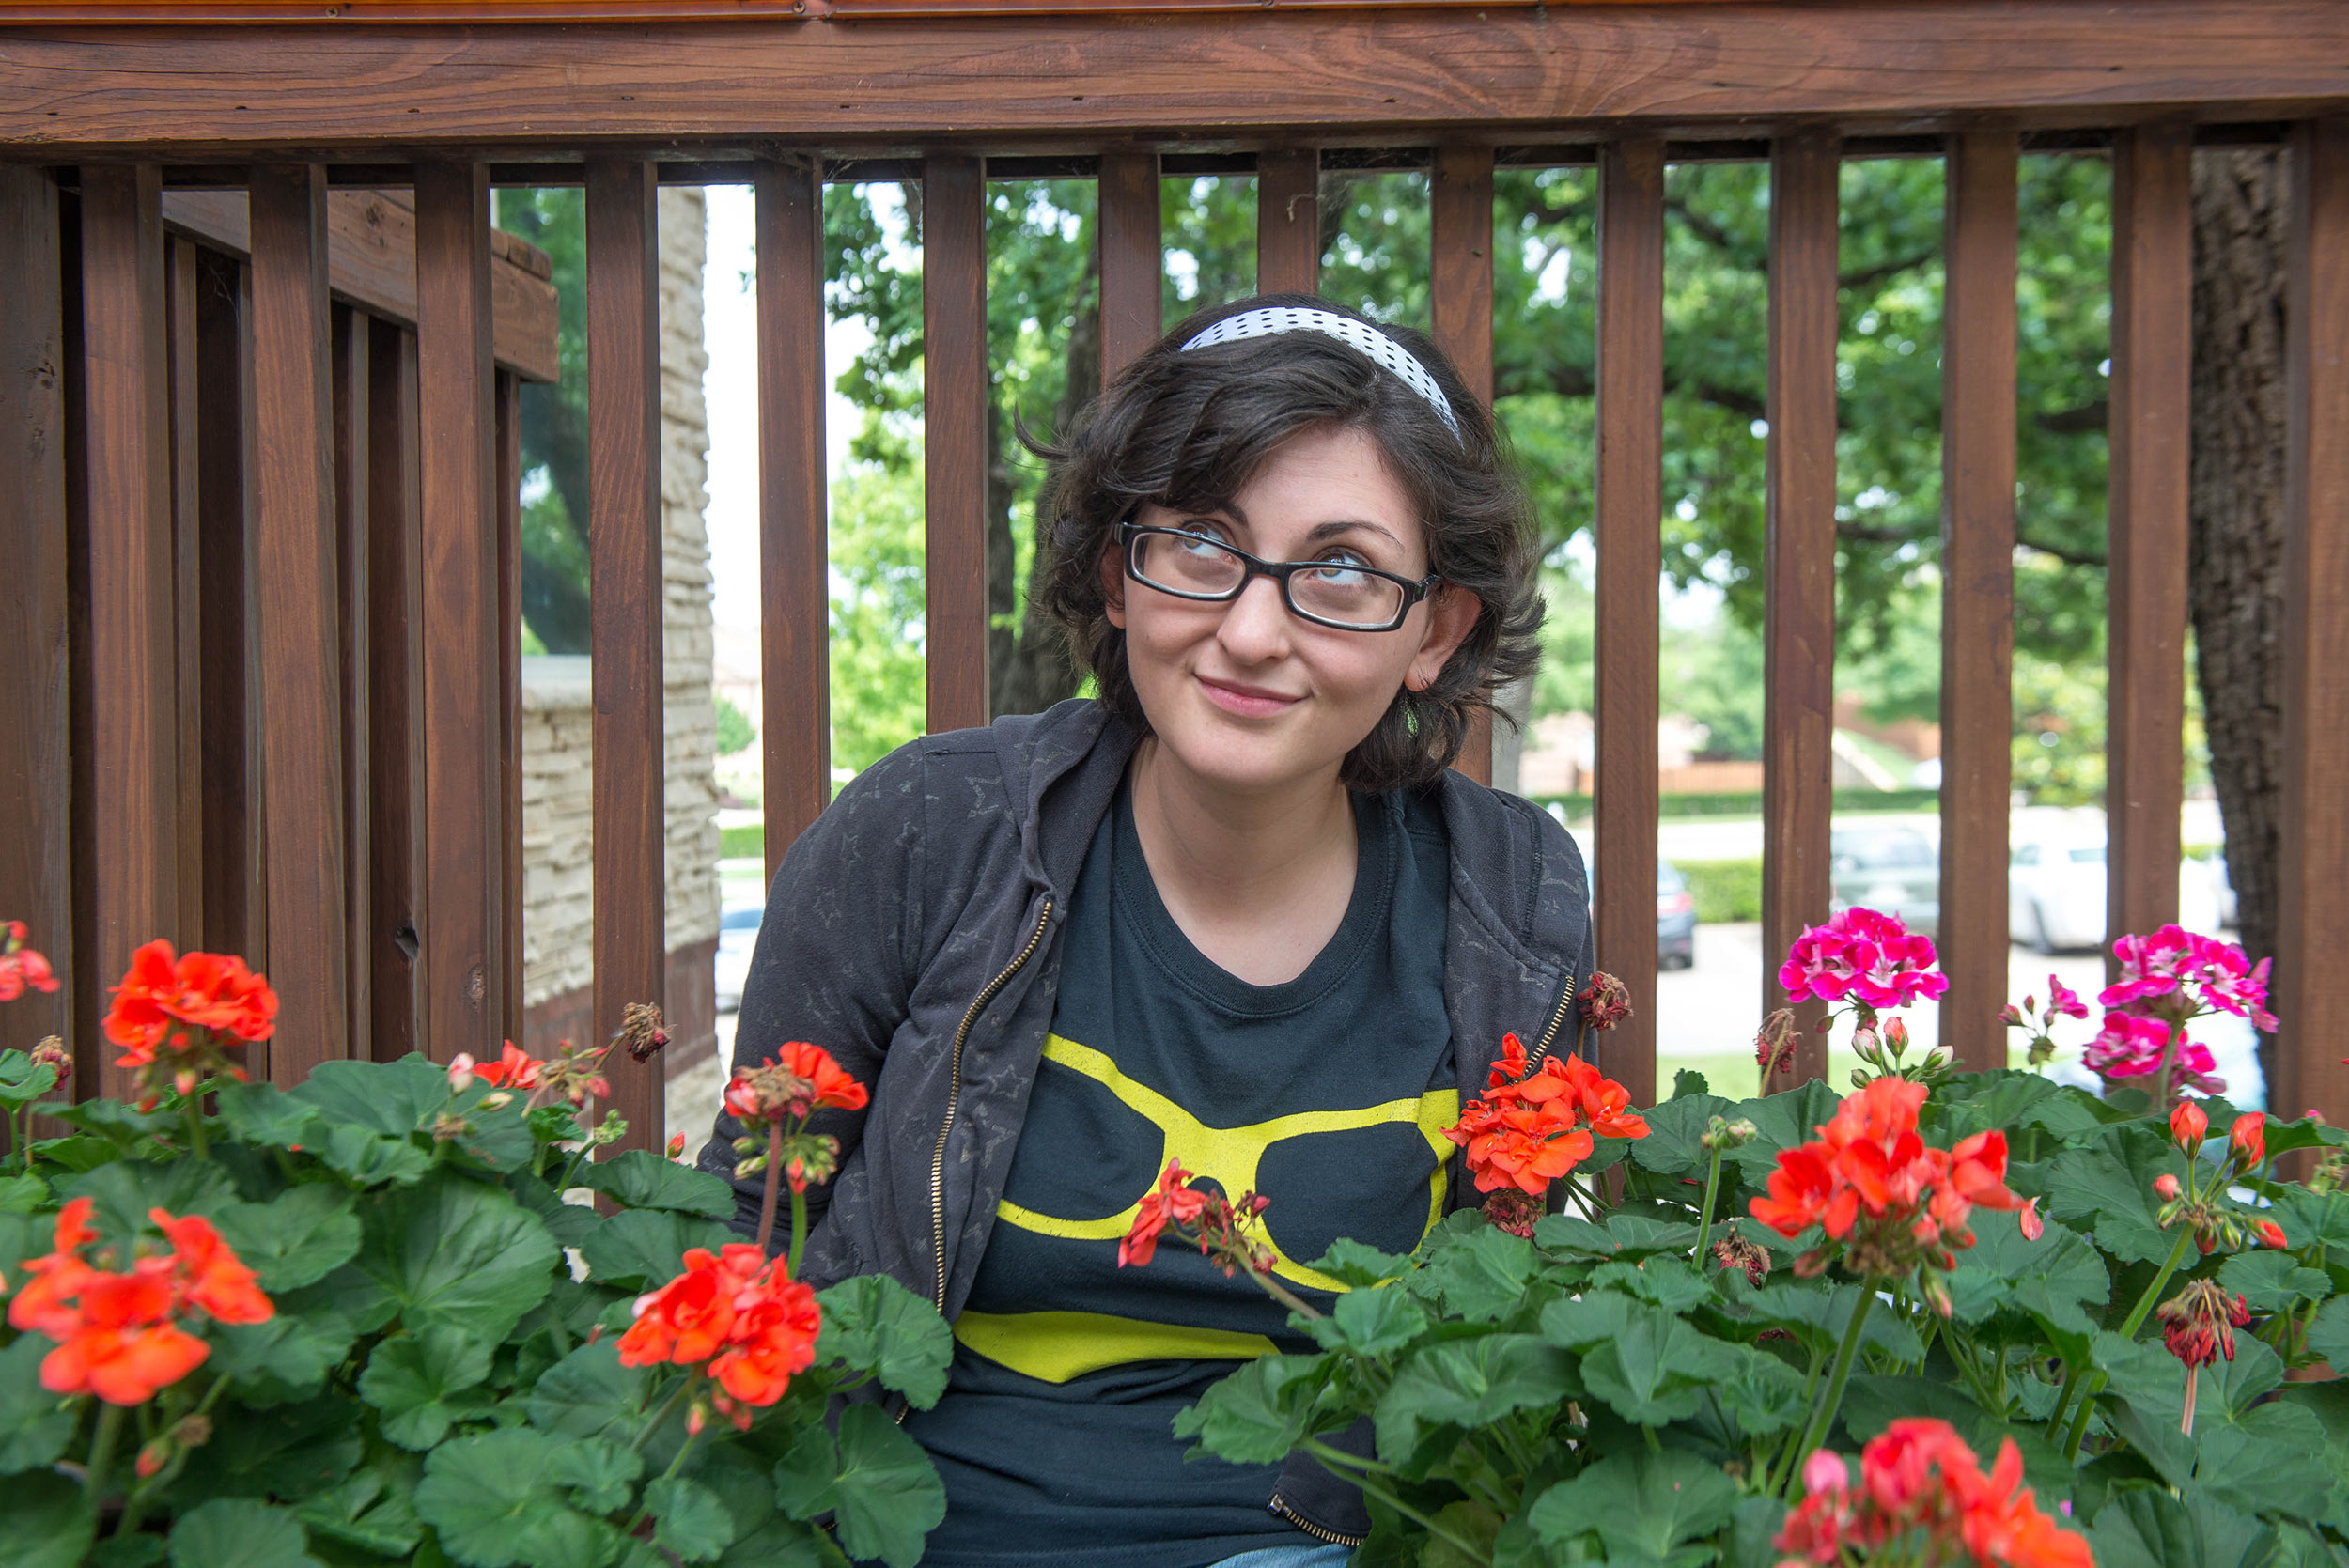 woman sitting in flower bed smiling